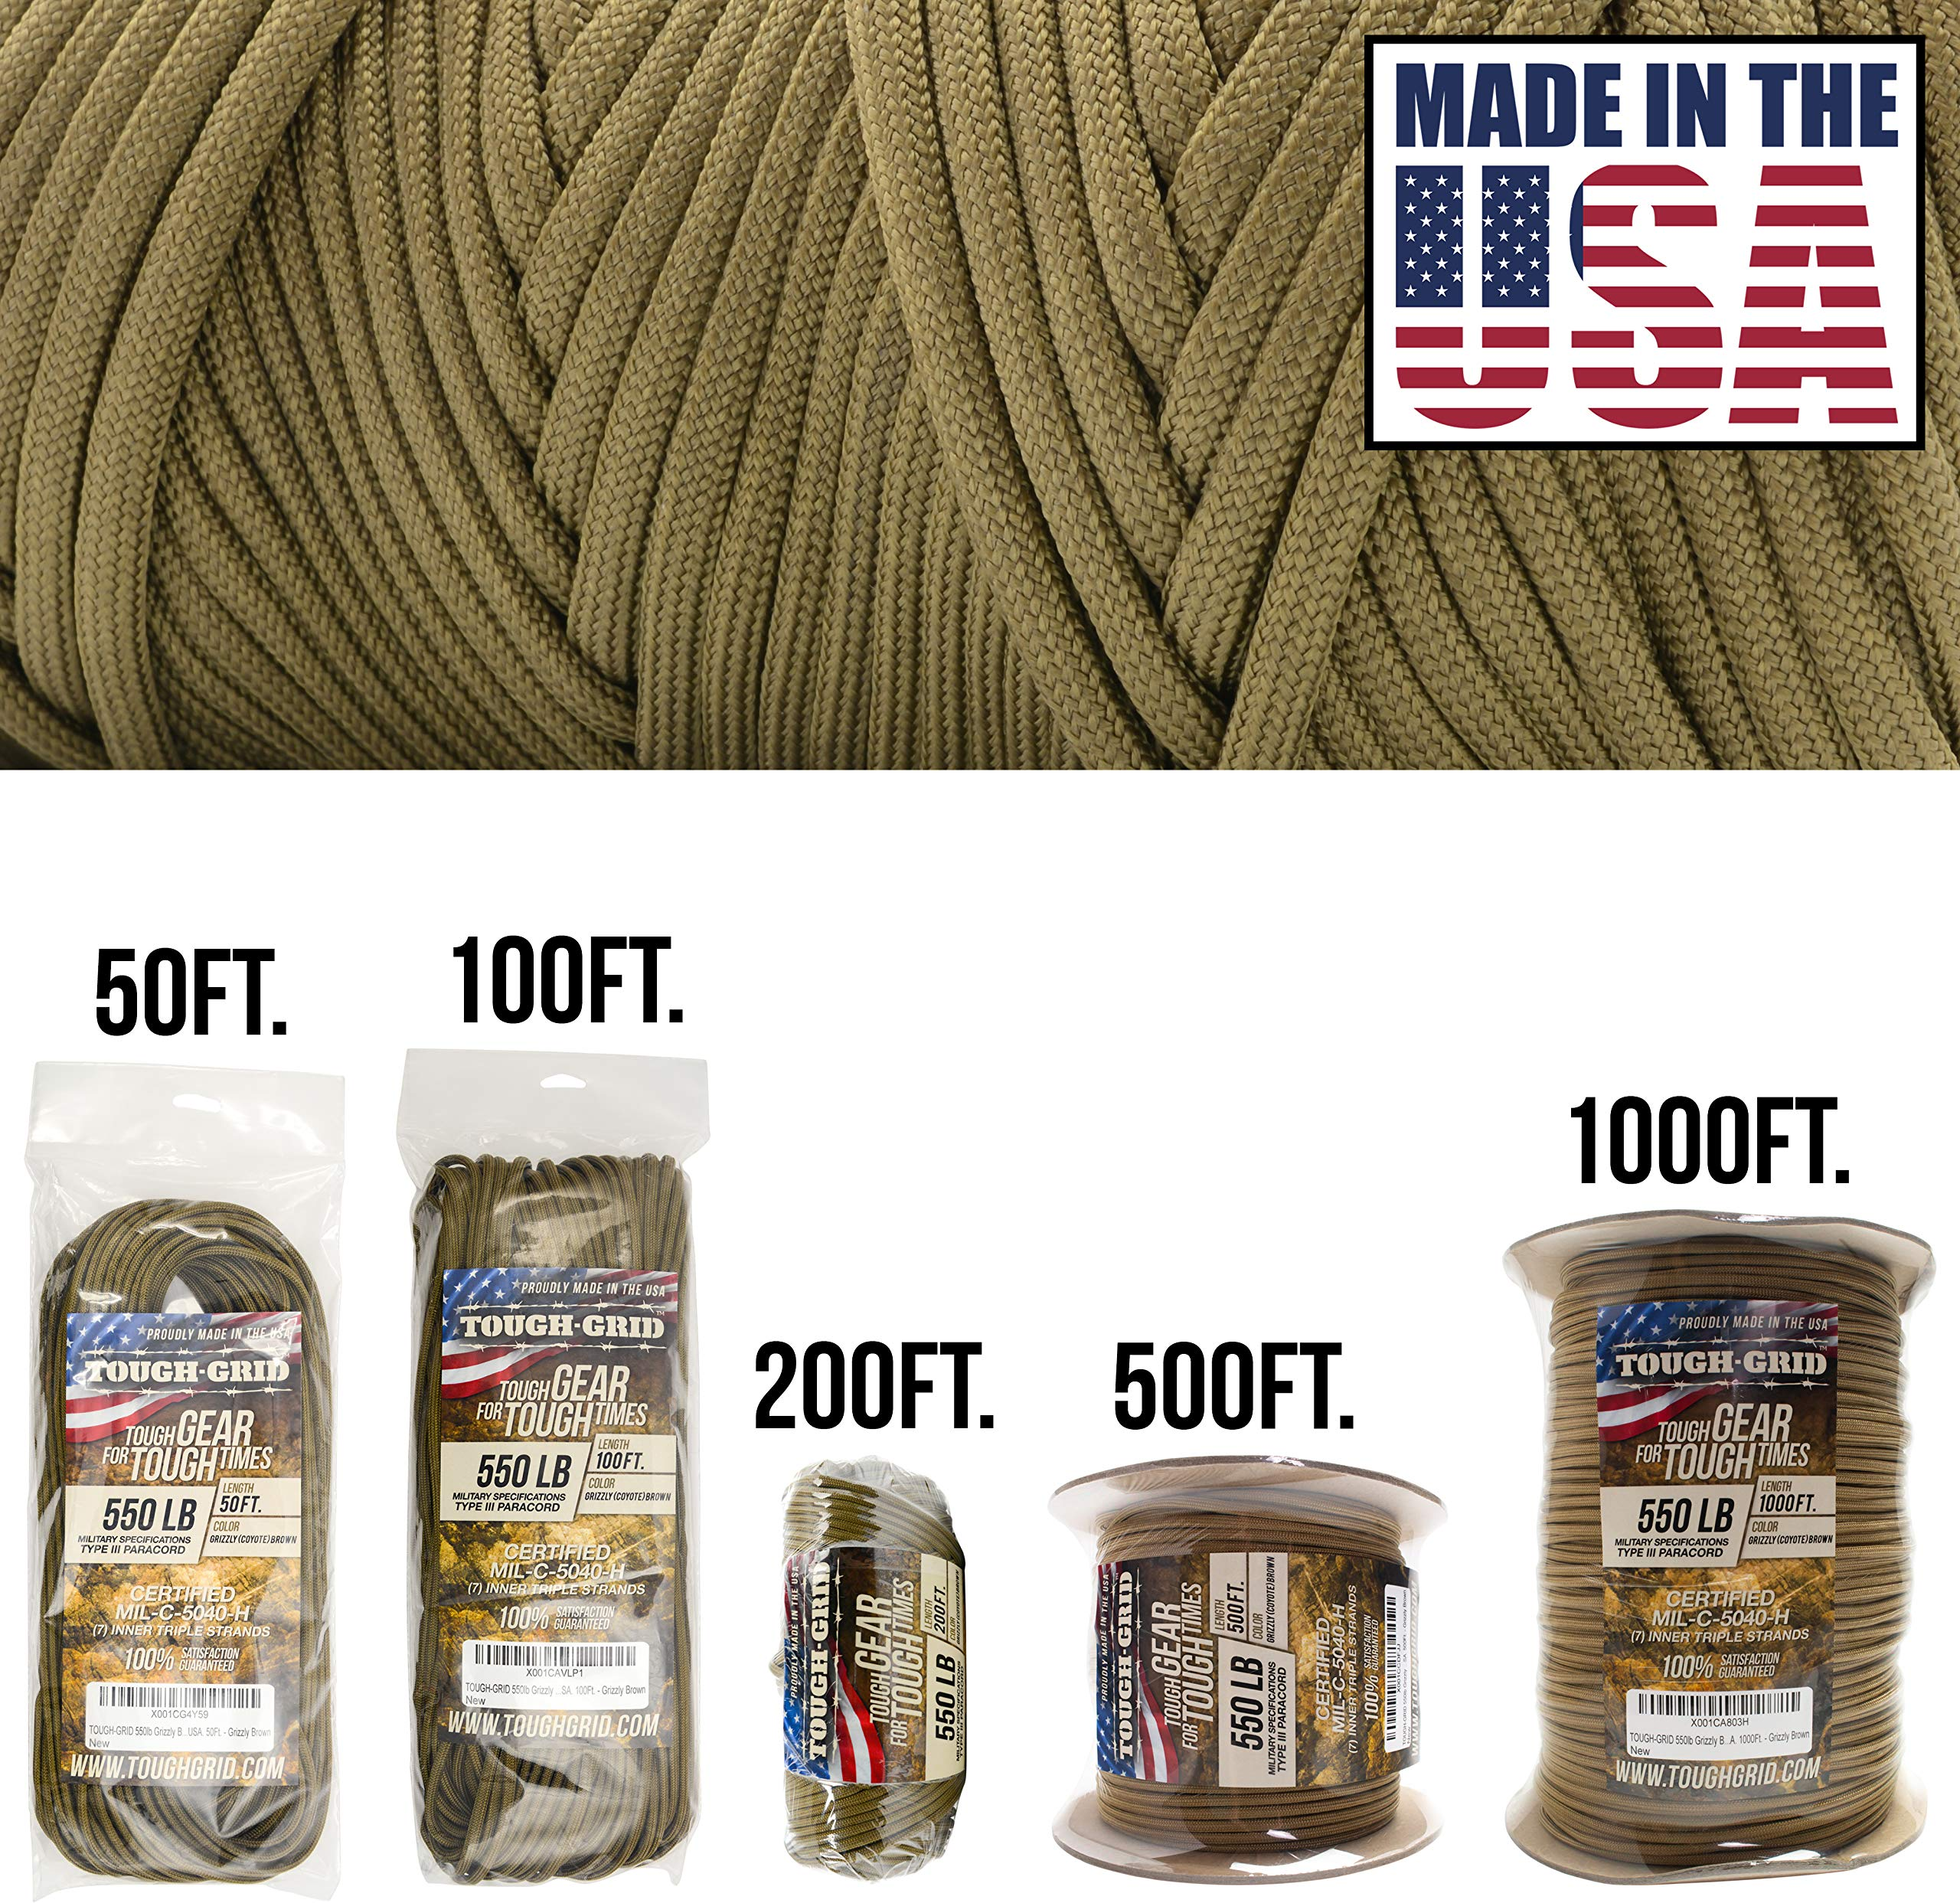 TOUGH-GRID 550lb Grizzly (Coyote) Brown Paracord/Parachute Cord - 100% Nylon Genuine Mil-Spec Type III Paracord Used by The US Military - (MIL-C-5040-H) - Made in The USA. 50Ft. - Grizzly Brown